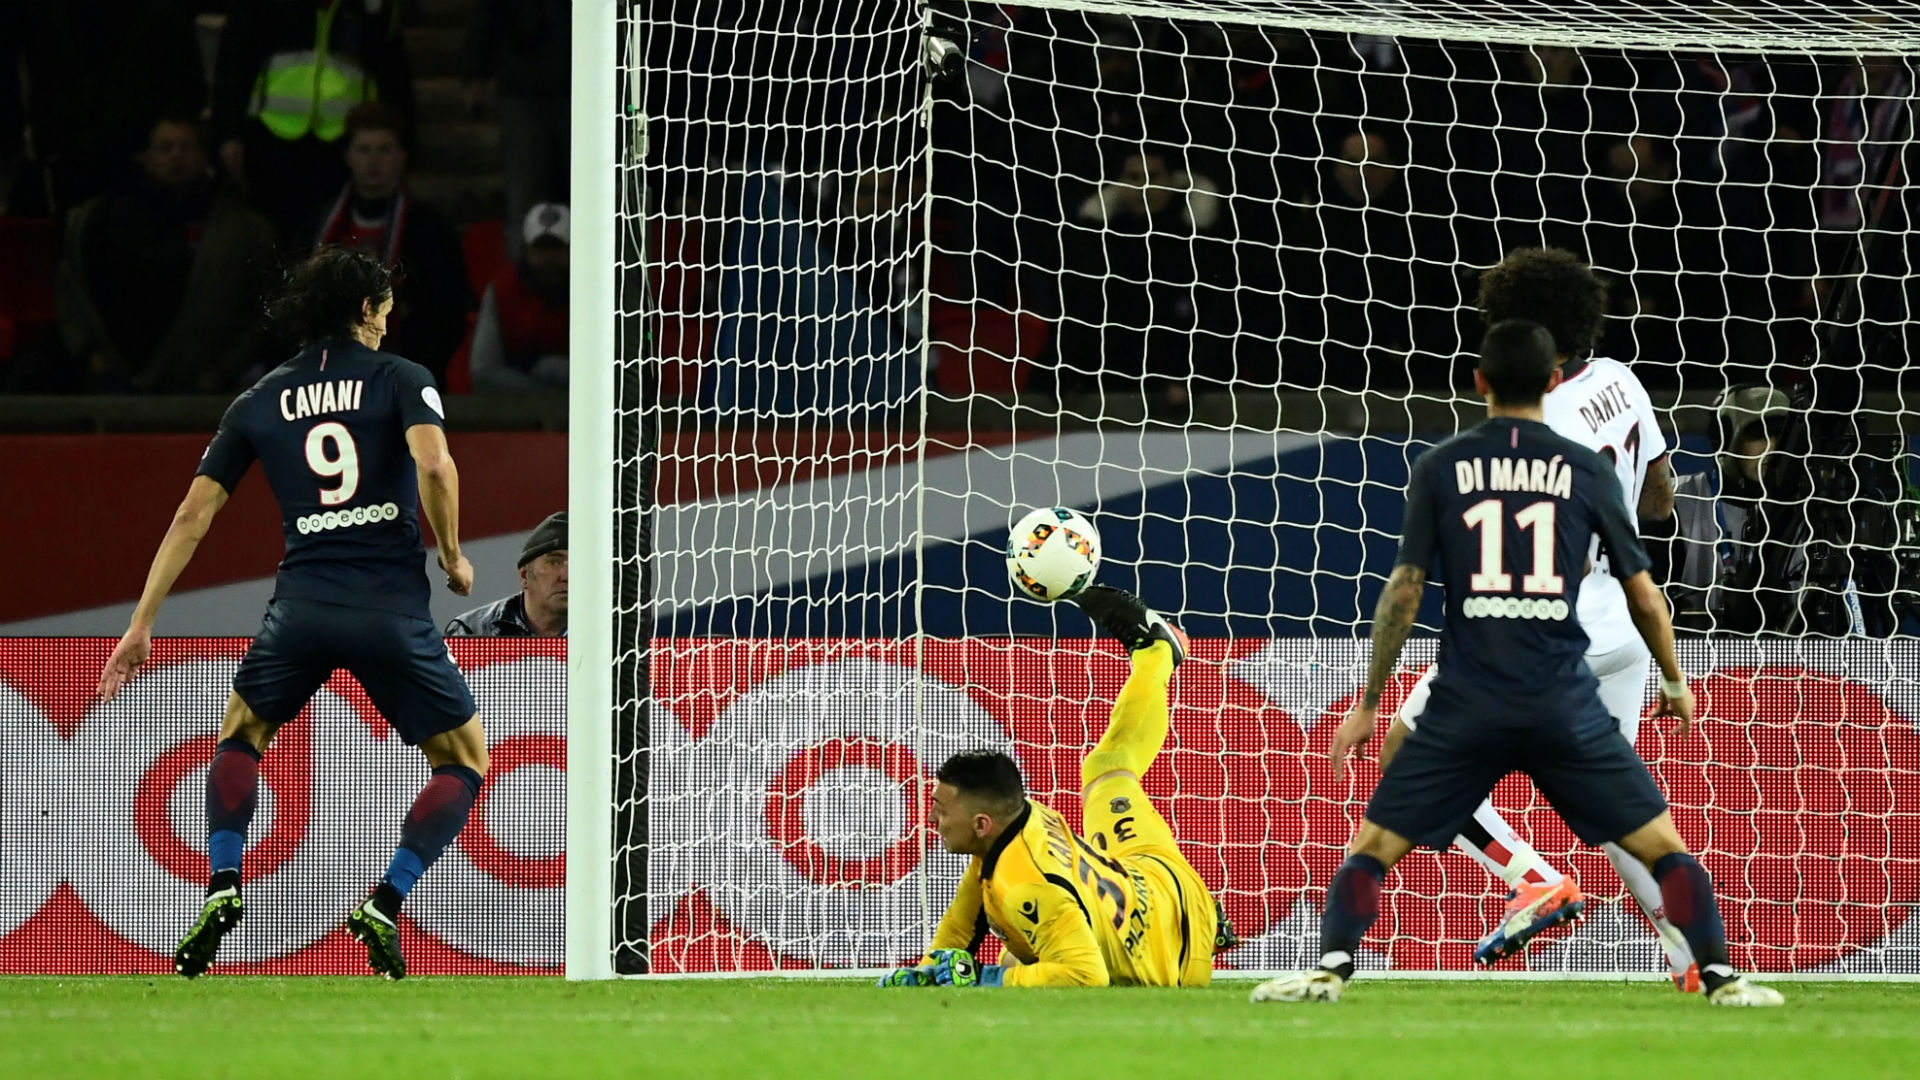 As was the case in the feeble 2-2 draw against Ludogorets on Tuesday that  cost PSG top spot in Champions League Group A 1519097487d1